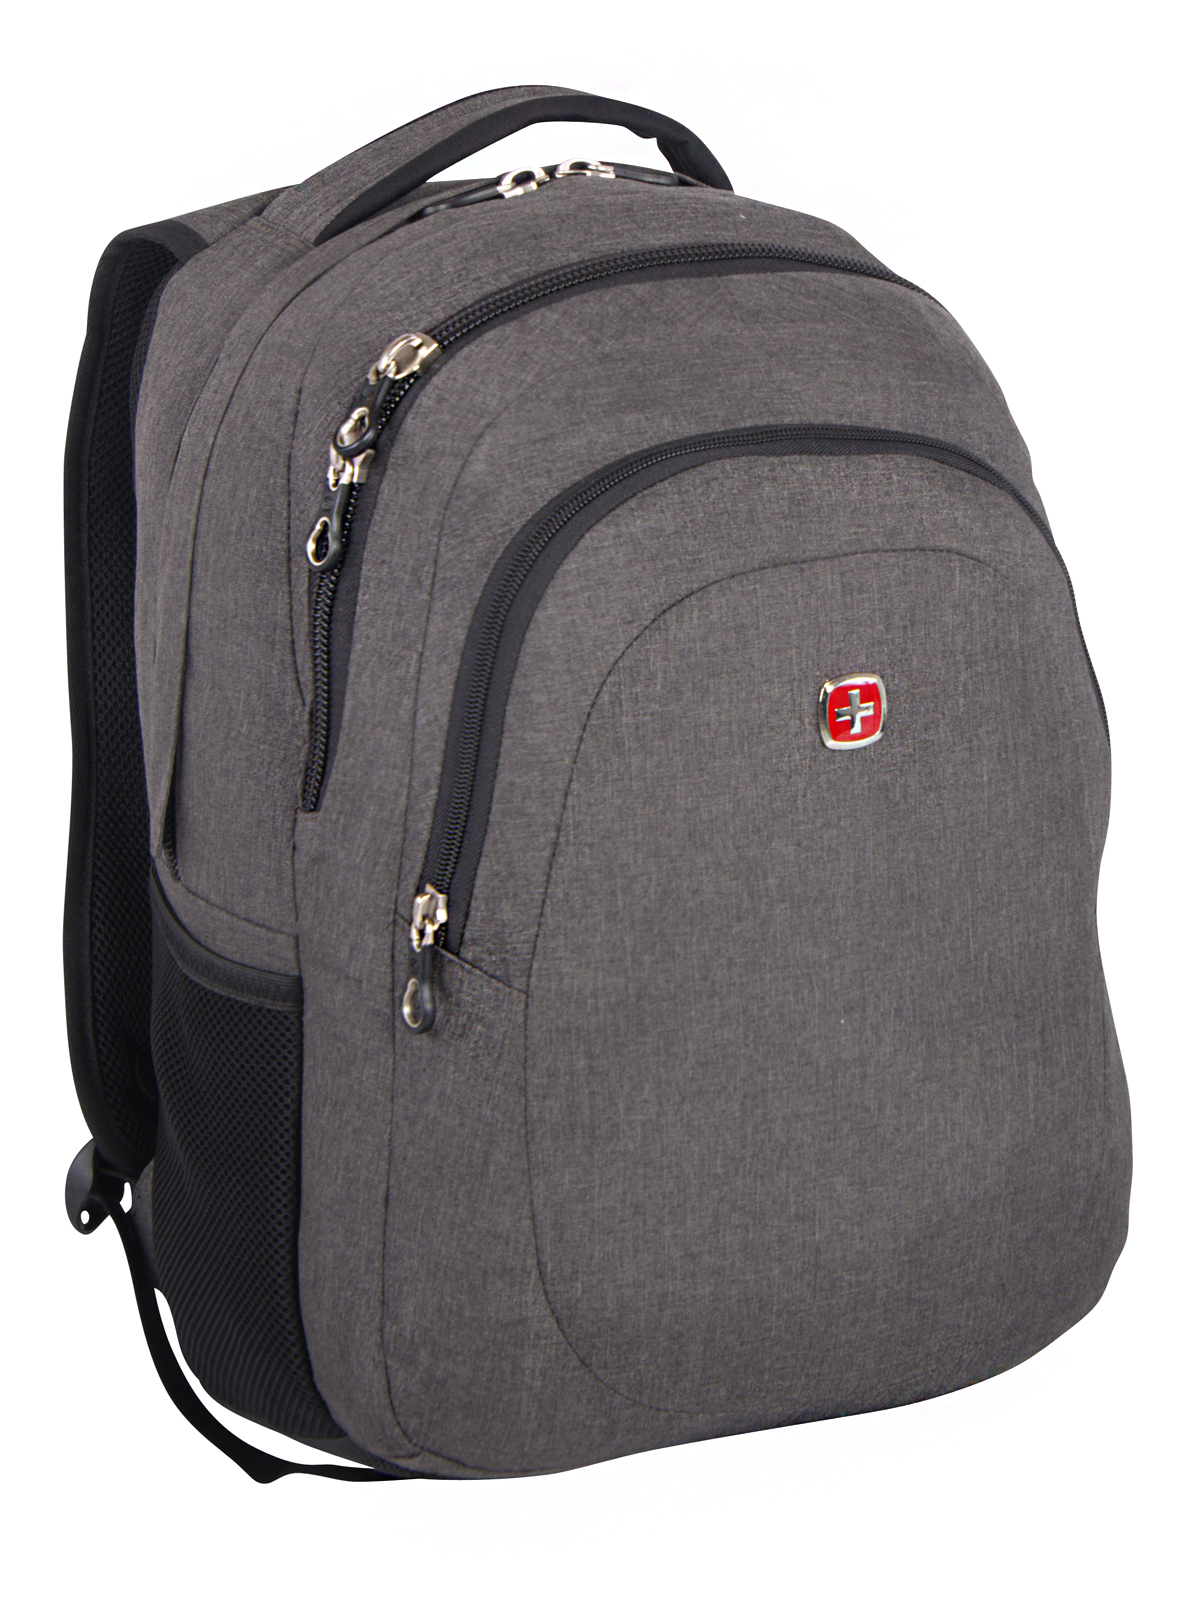 Backpacks for sale | Holiday